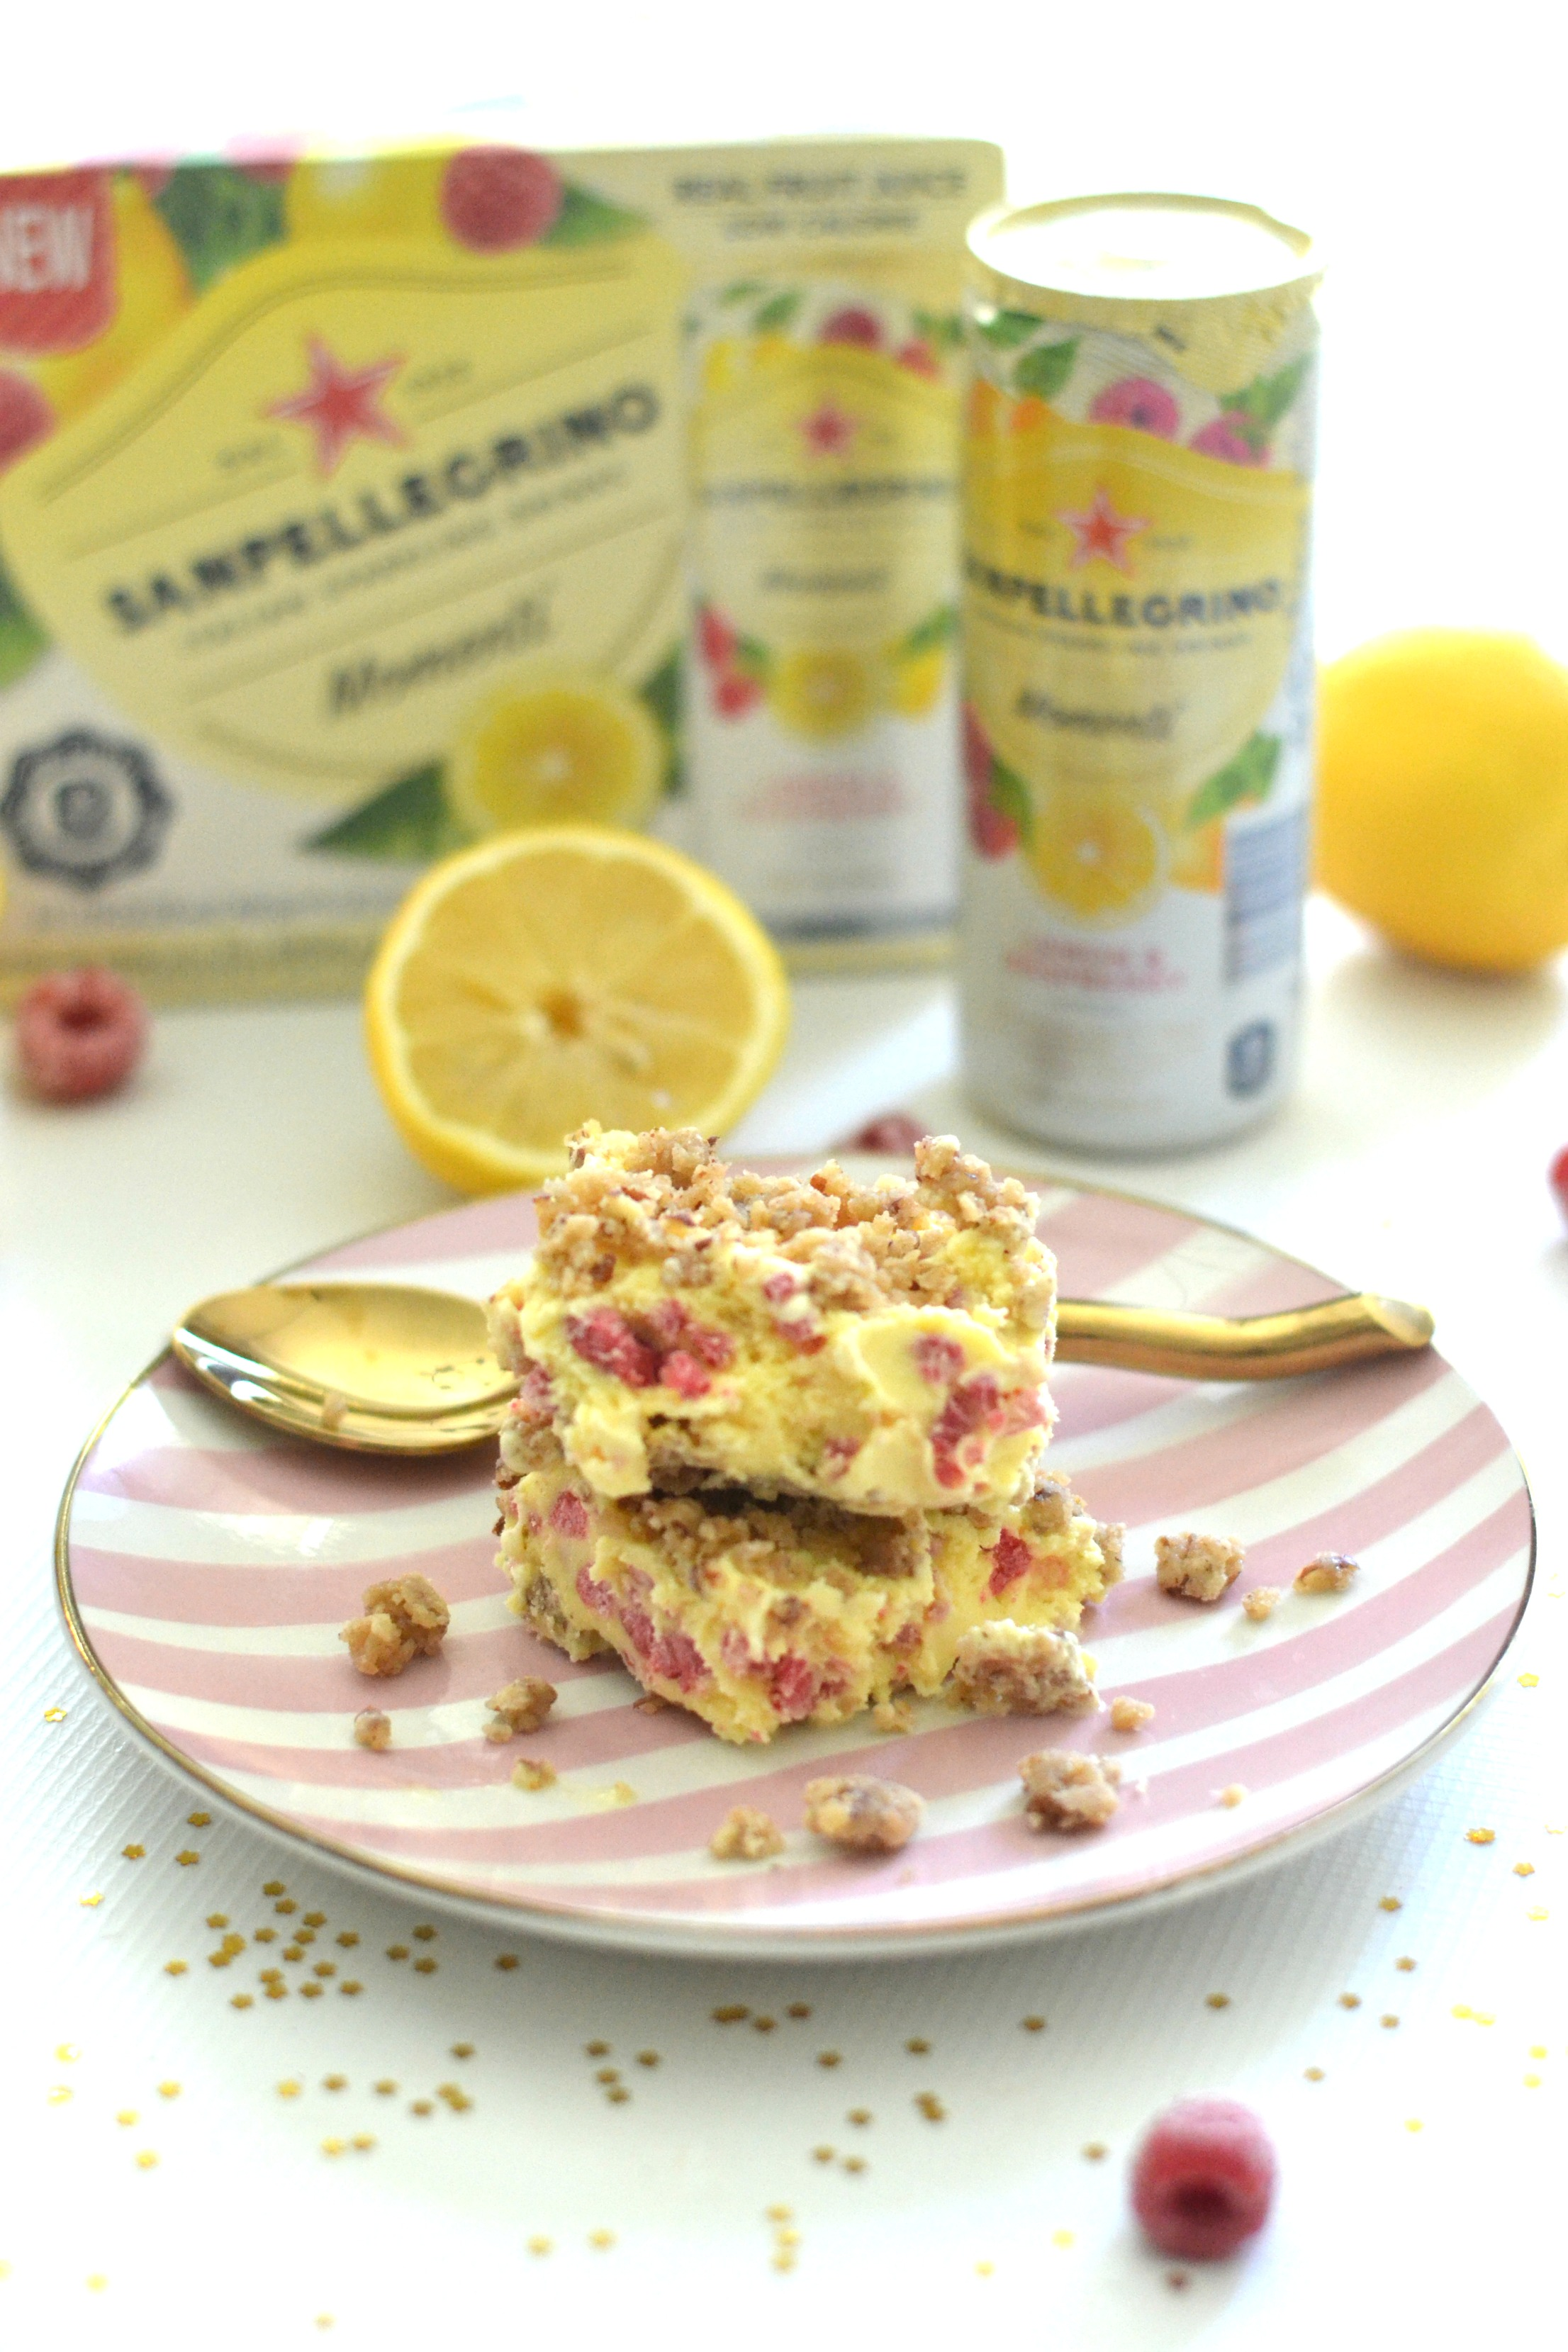 Lemon Raspberry Ice Cream Crumble Bars #MySanPelMomenti #TastefullyItalian